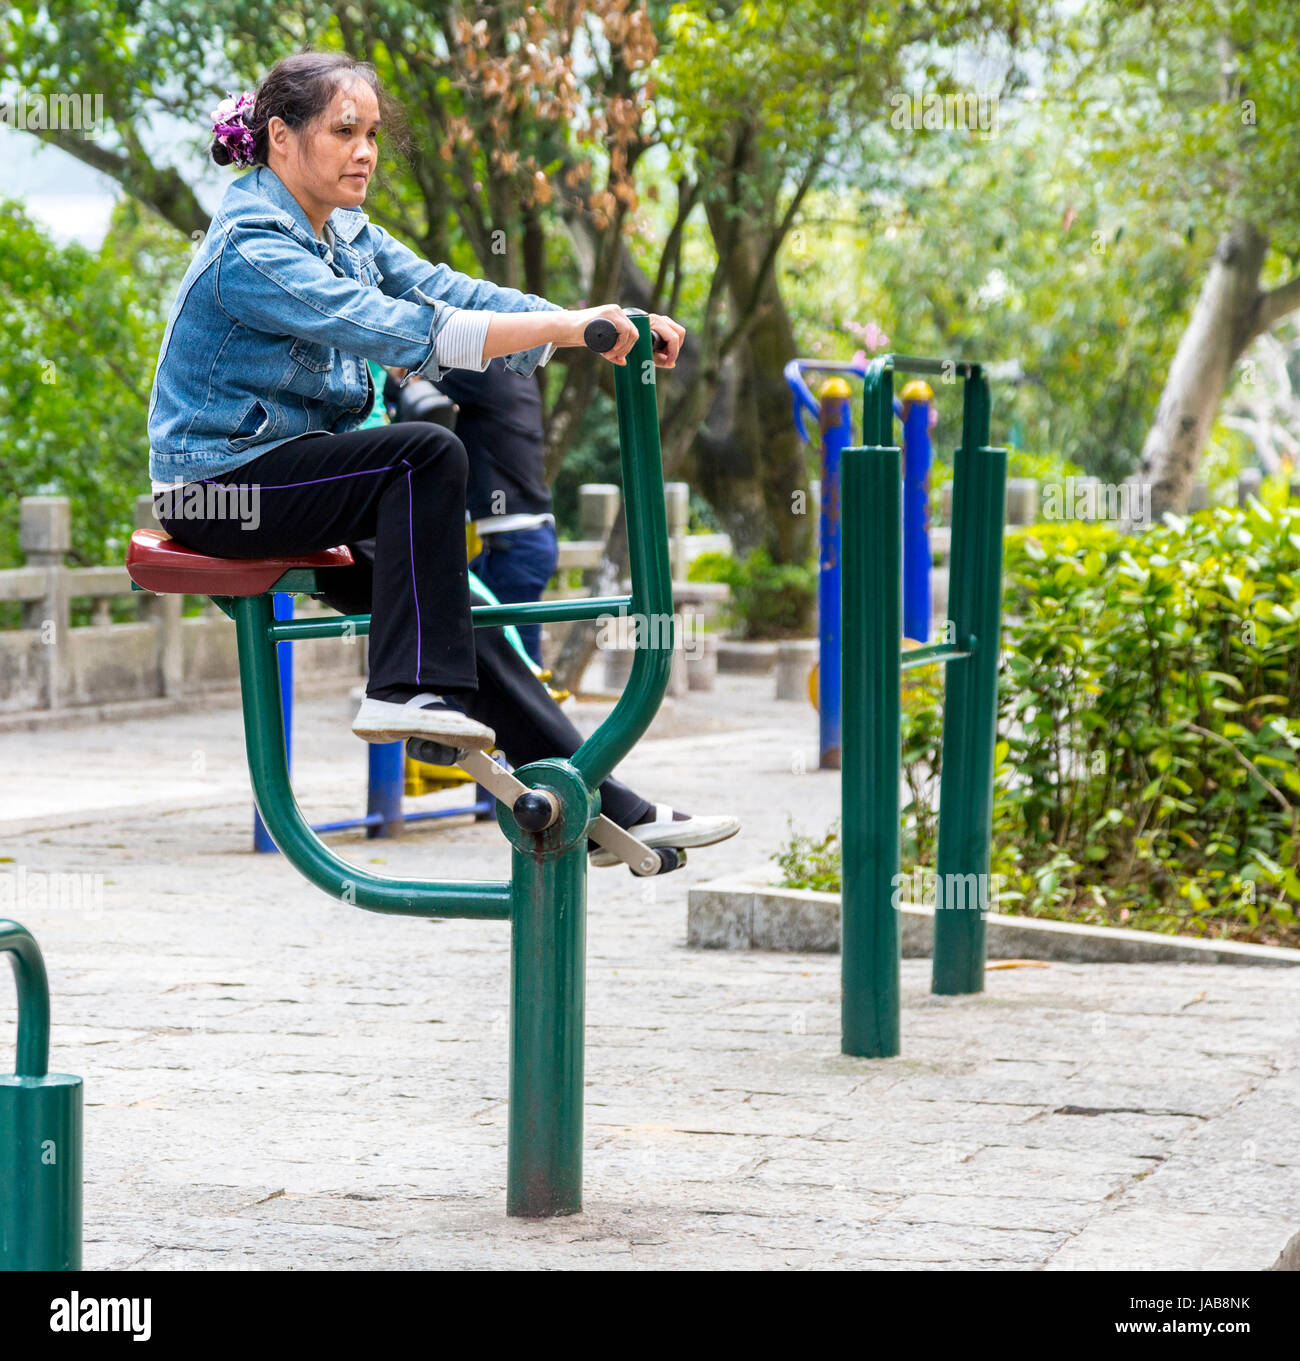 Yangshuo, Chine. Woman Working Out sur les appareils d'exercice. Photo Stock